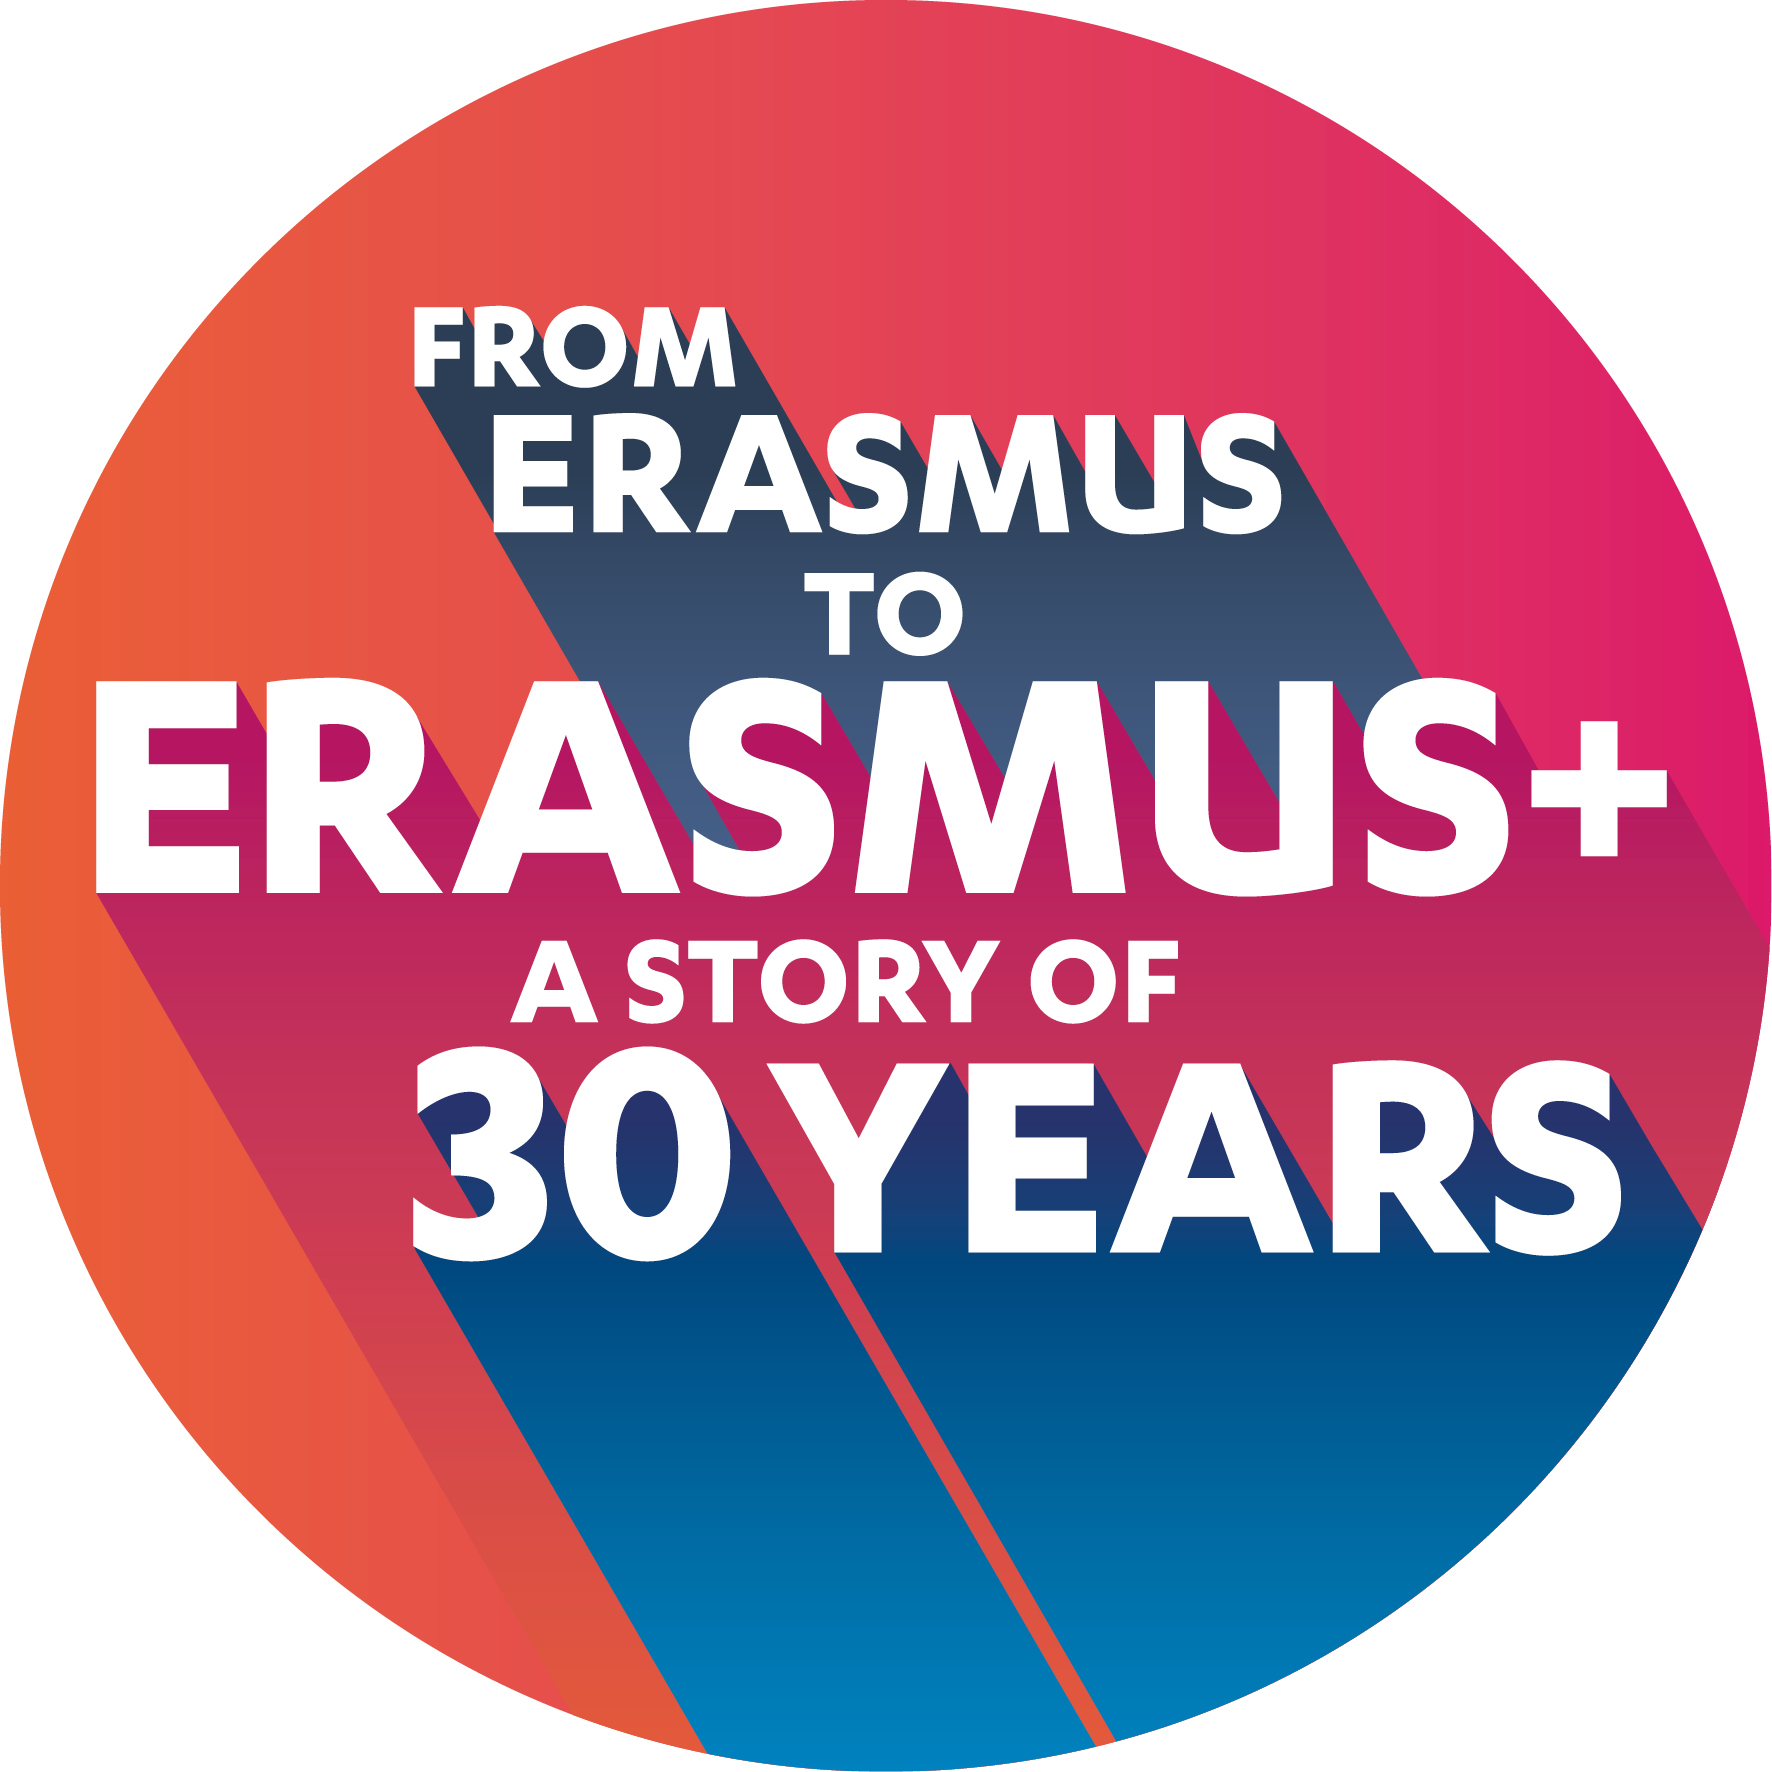 ErasmusPlus-30years-Circle-EN-300dpi